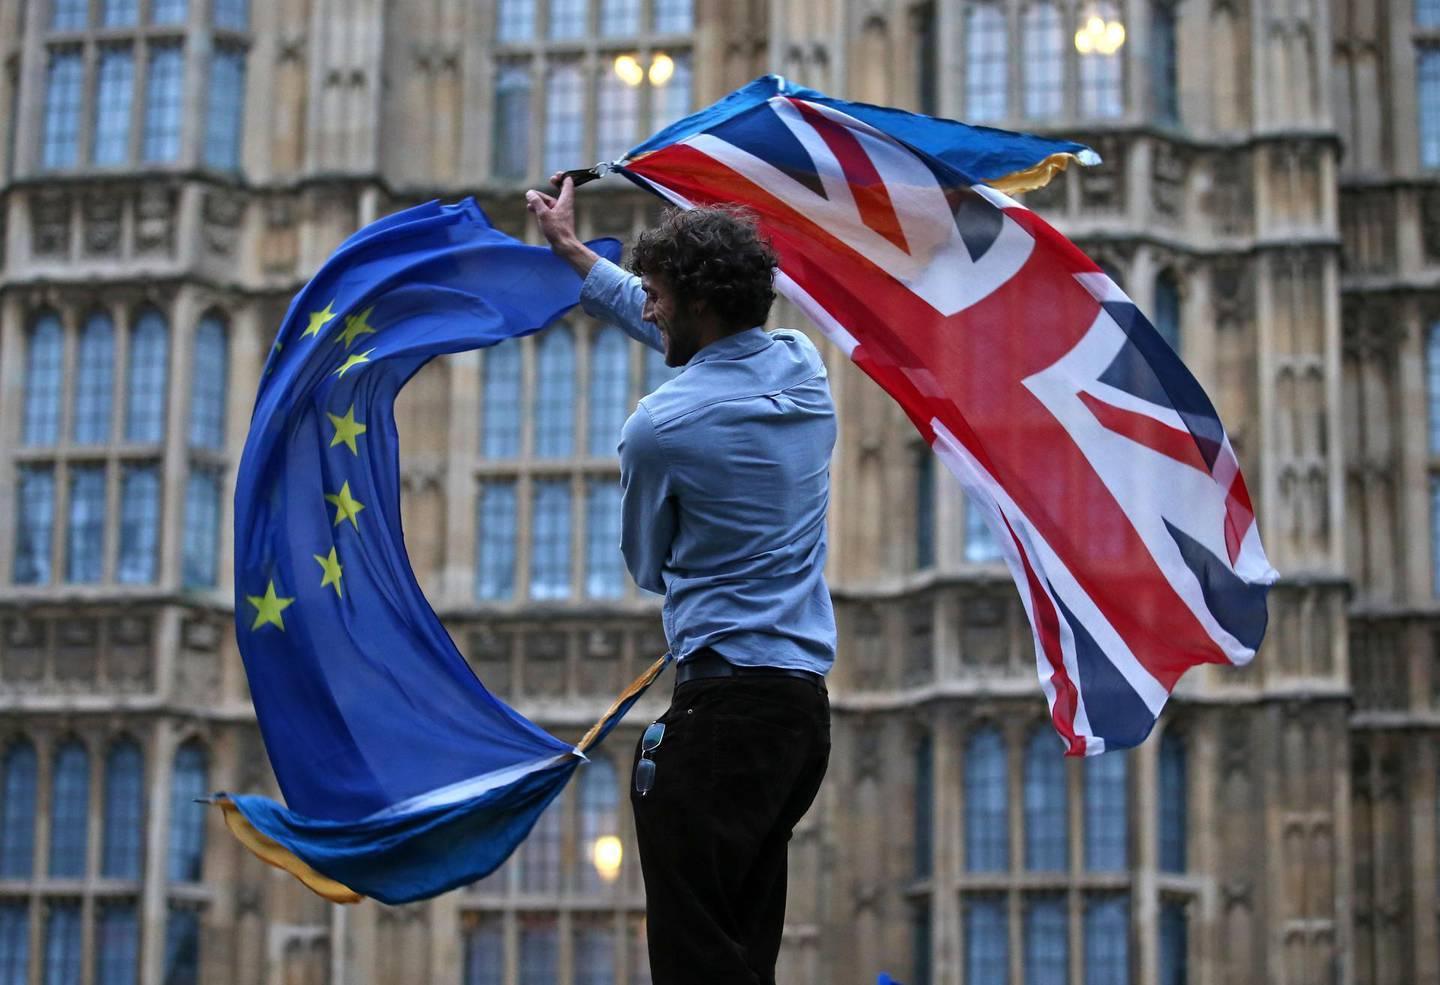 (FILES) In this file photo taken on June 28, 2016 a man waves both a Union flag and a European flag together on College Green outside The Houses of Parliament at an anti-Brexit protest in central London. Britain said on Thursday, December 24, 2020 an agreement had been secured on the country's future relationship with the European Union, after last-gasp talks just days before a cliff-edge deadline. / AFP / JUSTIN TALLIS